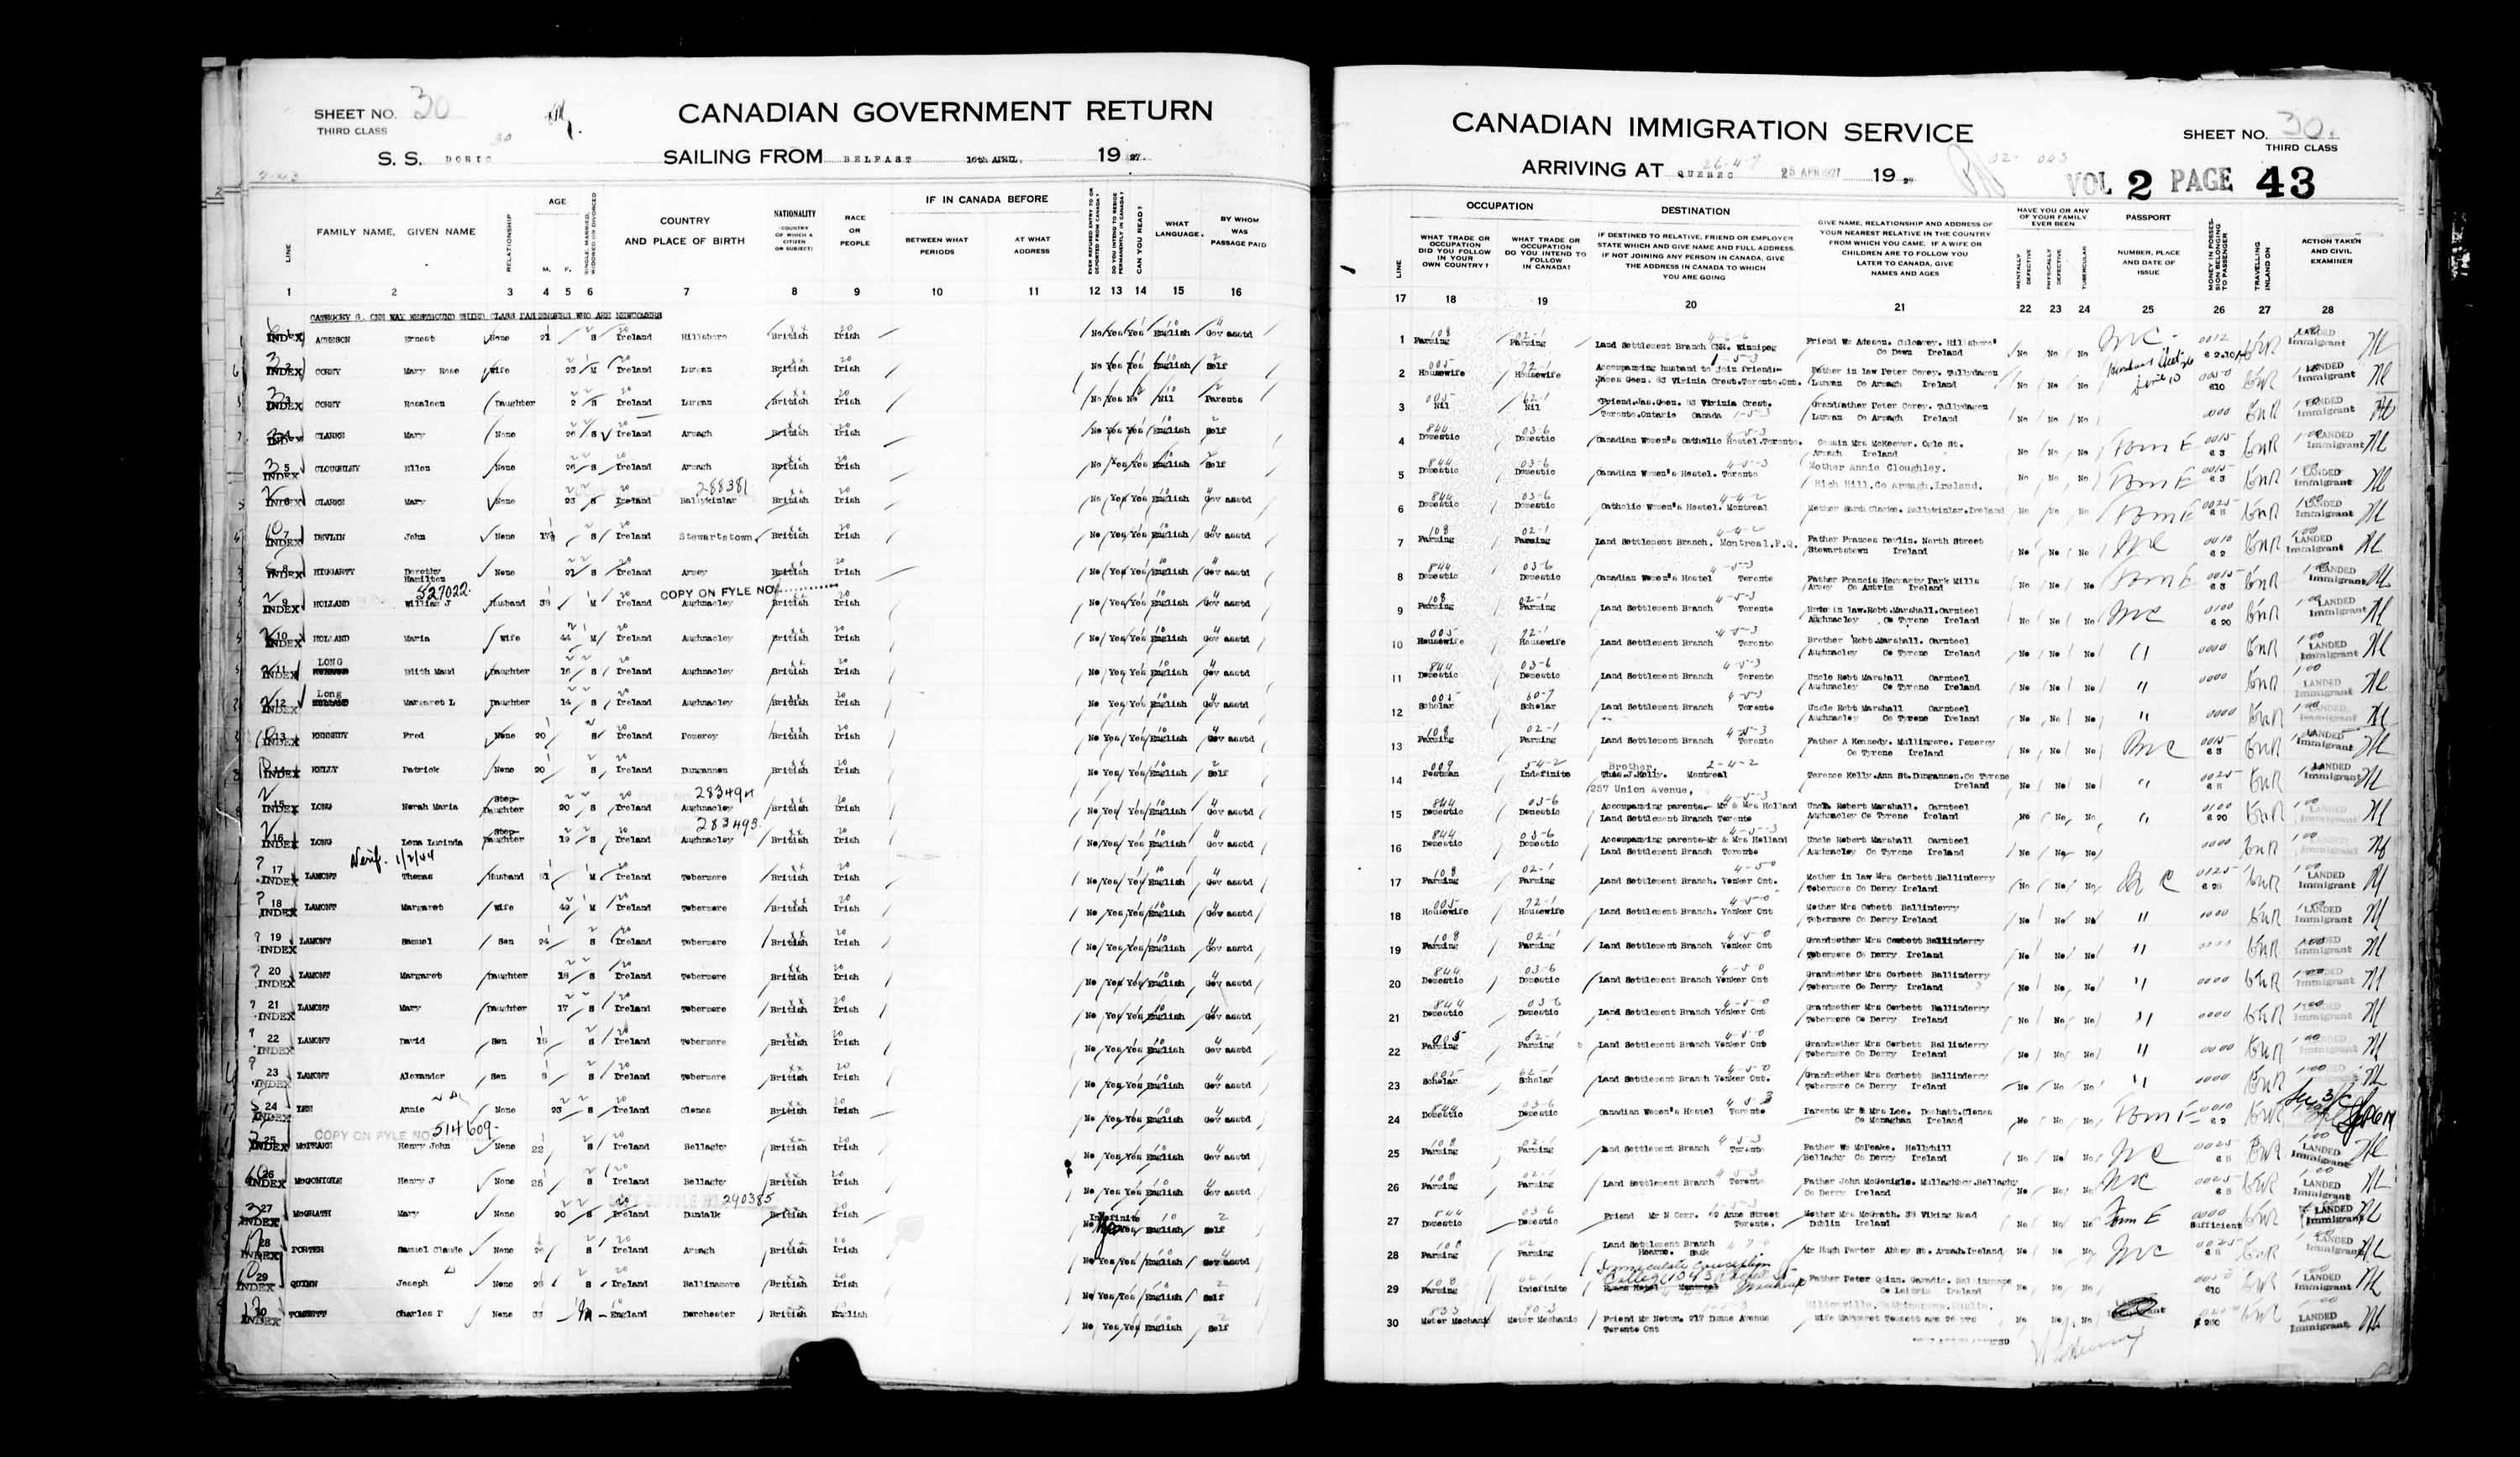 Title: Passenger Lists: Quebec City (1925-1935) - Mikan Number: 134839 - Microform: t-14729